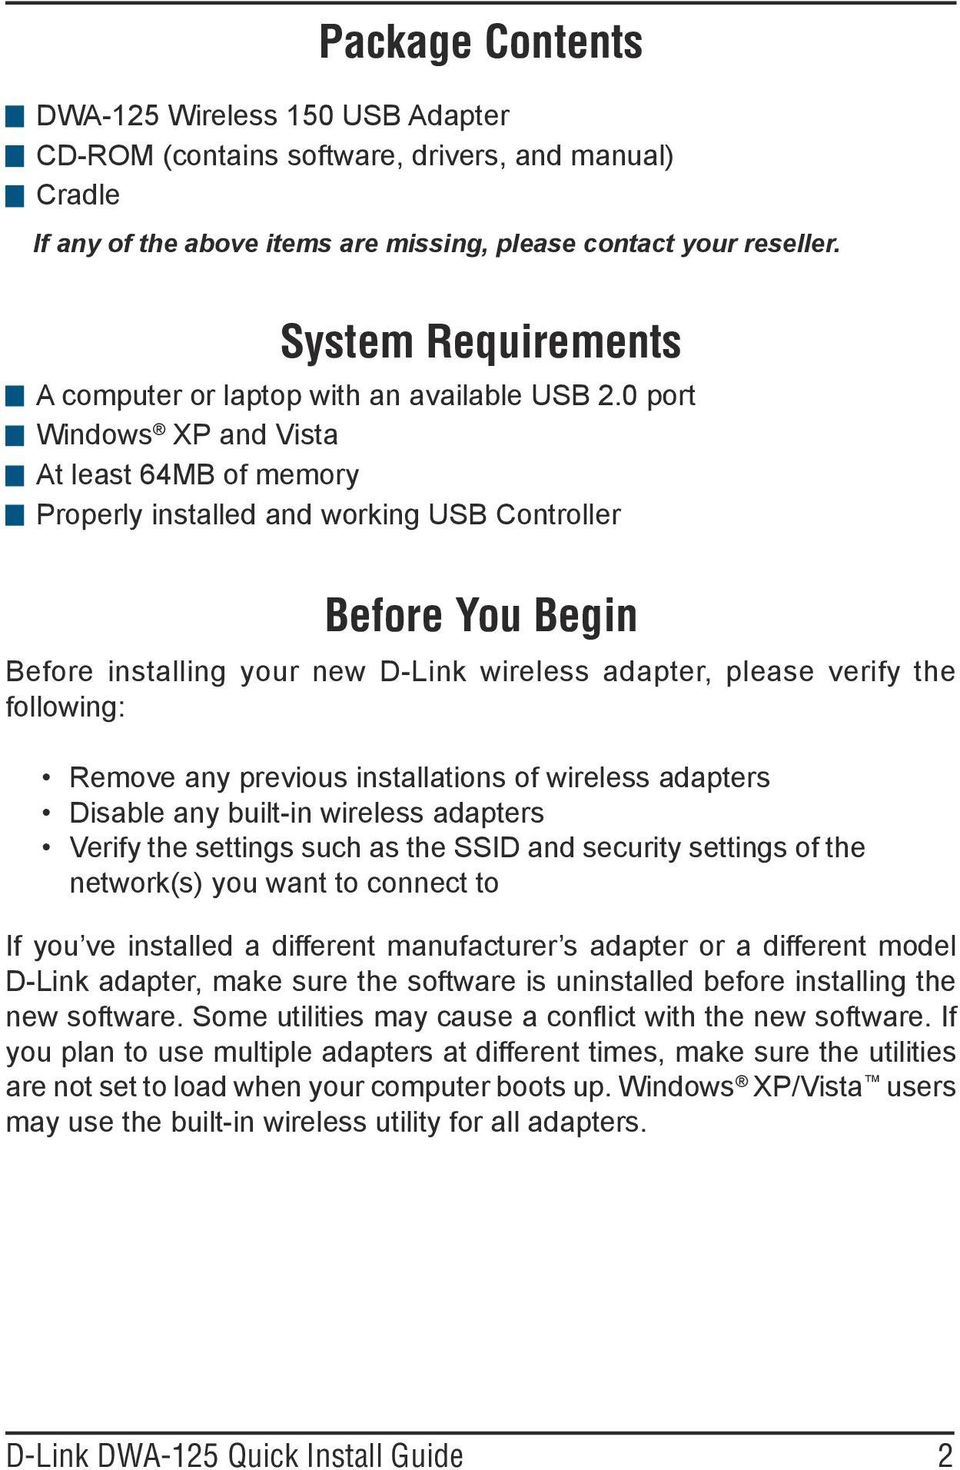 0 port Windows XP and Vista At least 64MB of memory Properly installed and working USB Controller Before You Begin Before installing your new D-Link wireless adapter, please verify the following: